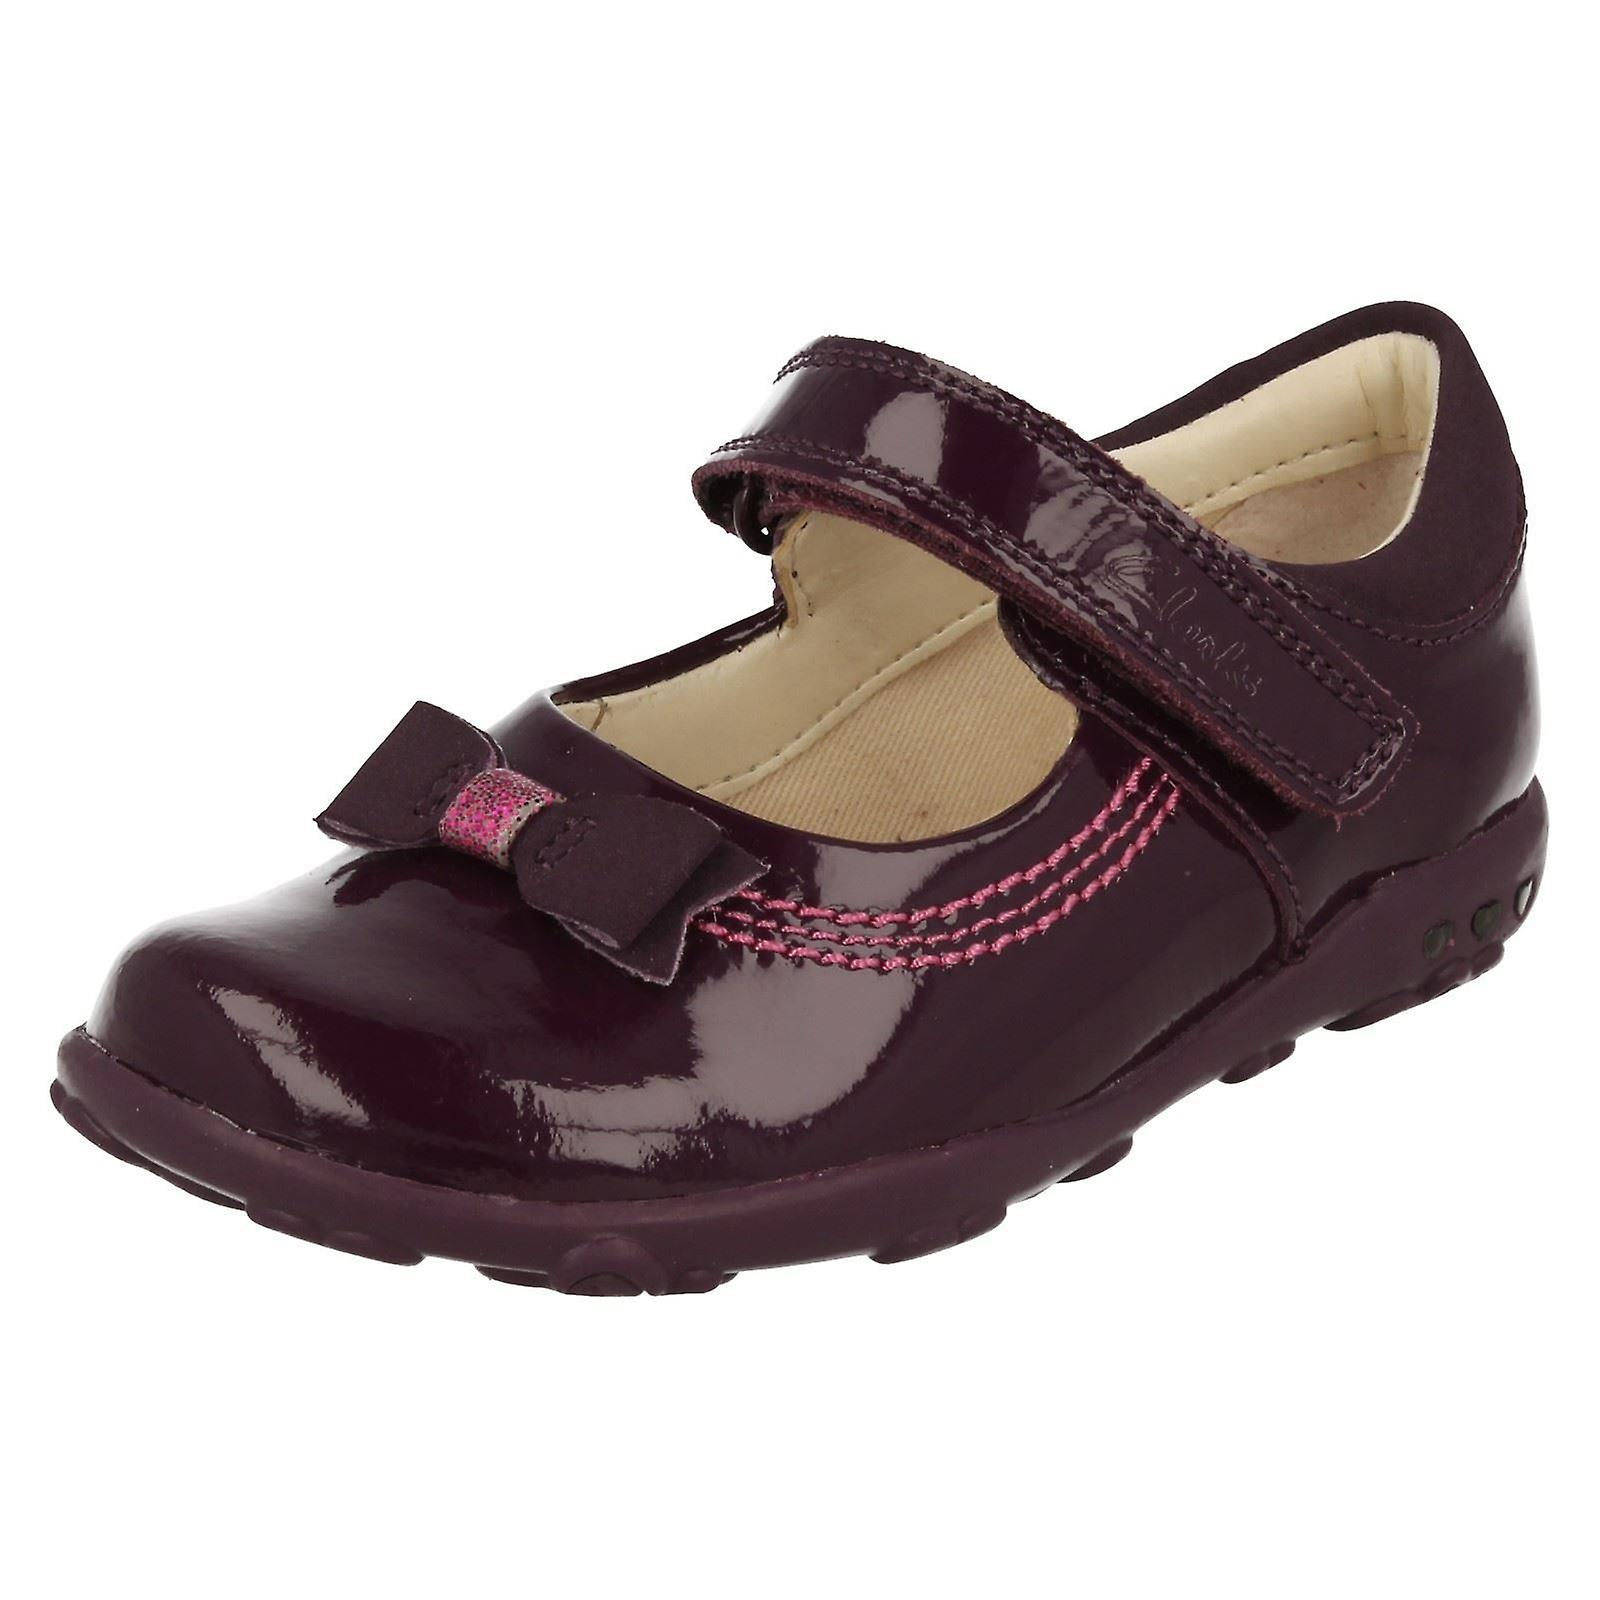 clarks shoes baby girl